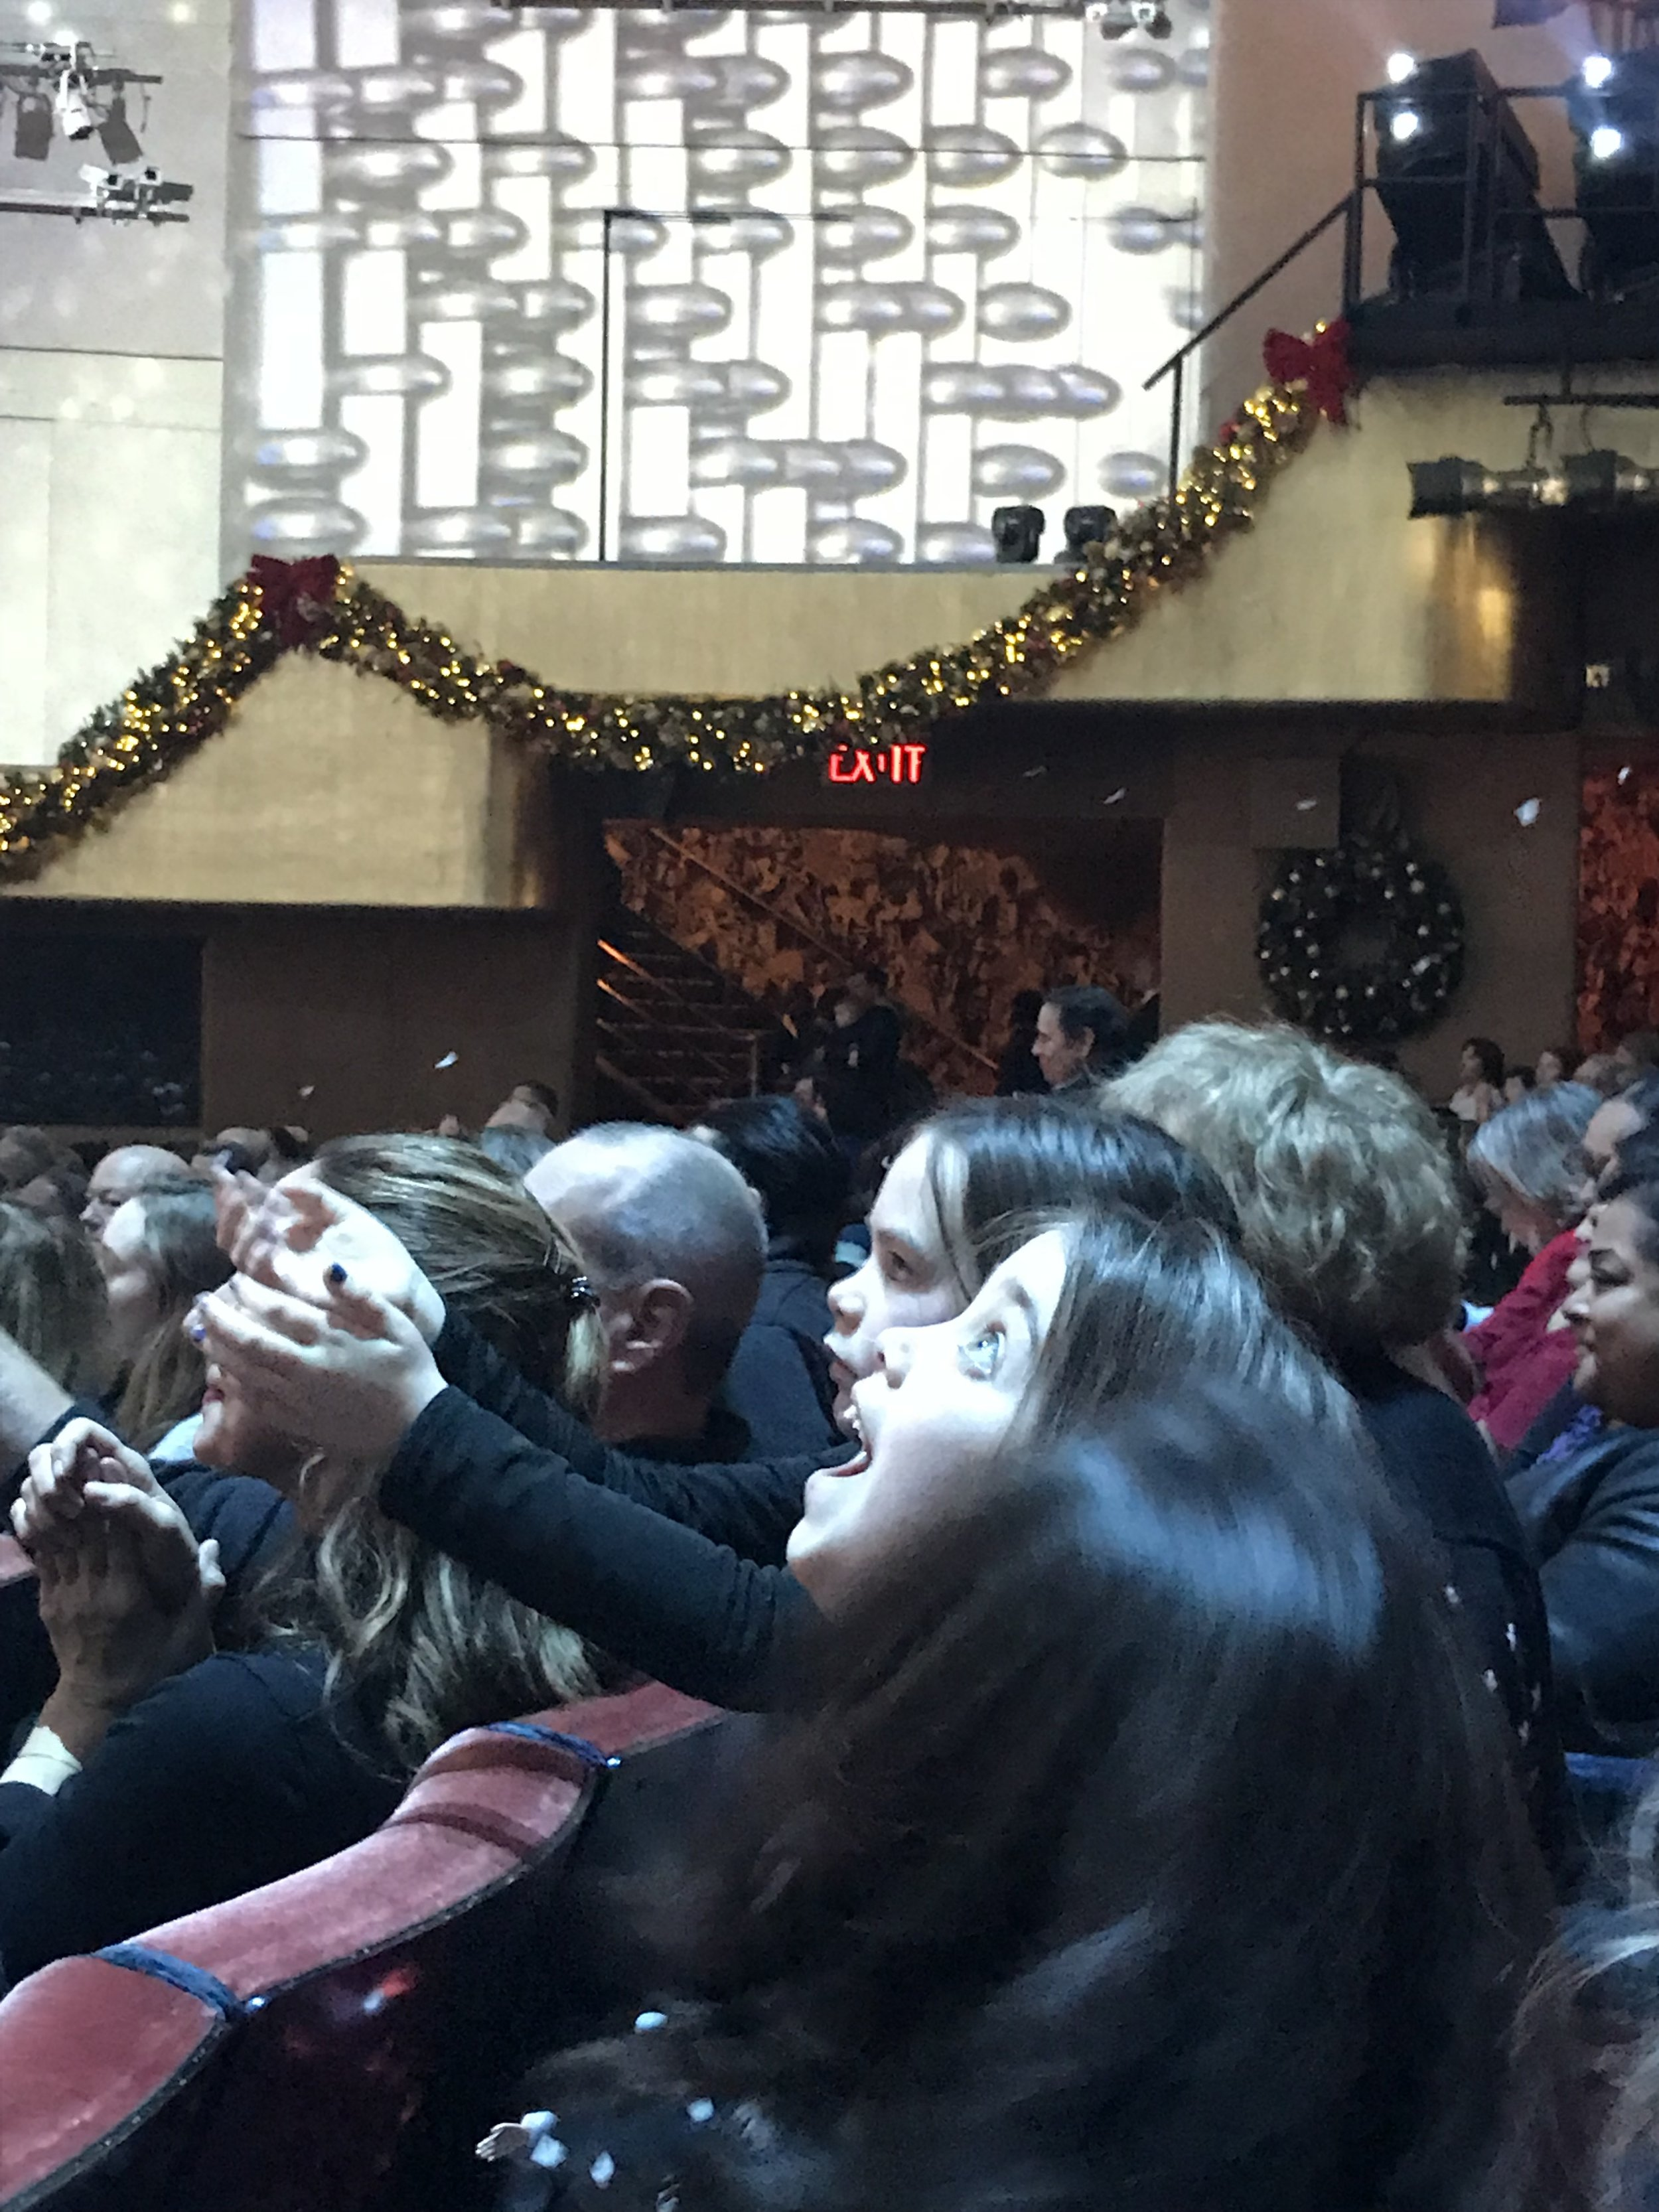 My mom got us tickets to the Radio City Christmas show and the look on the little girl's faces was magical